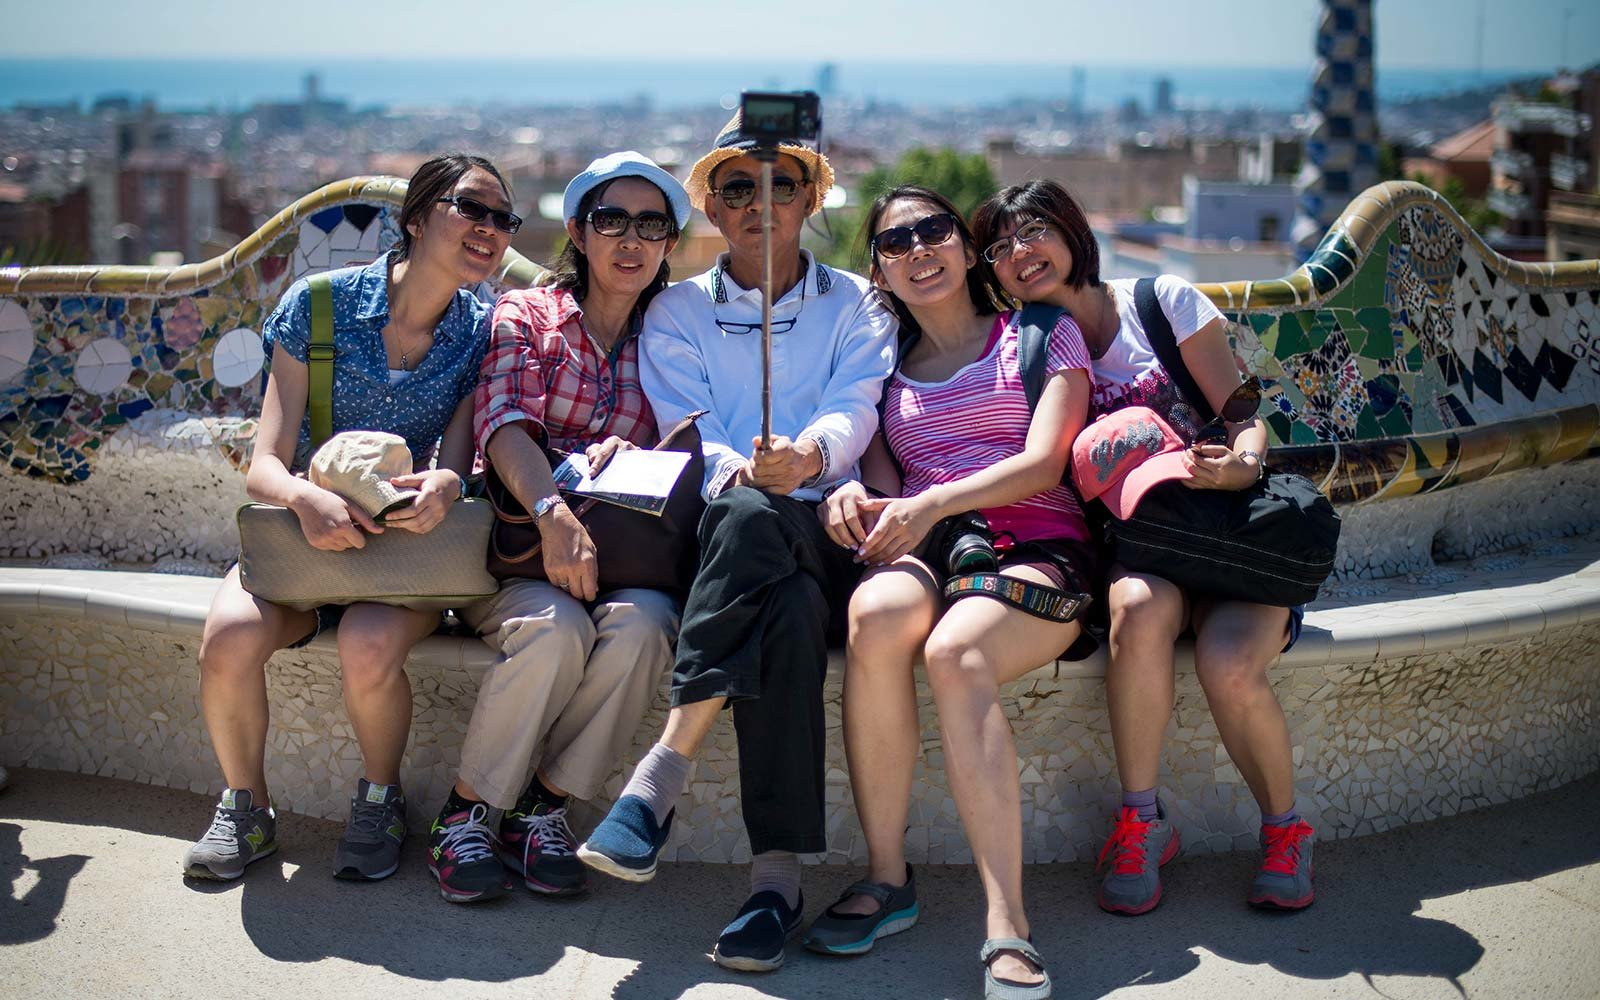 Why Barcelona Is Actively Trying to Push Away Tourists